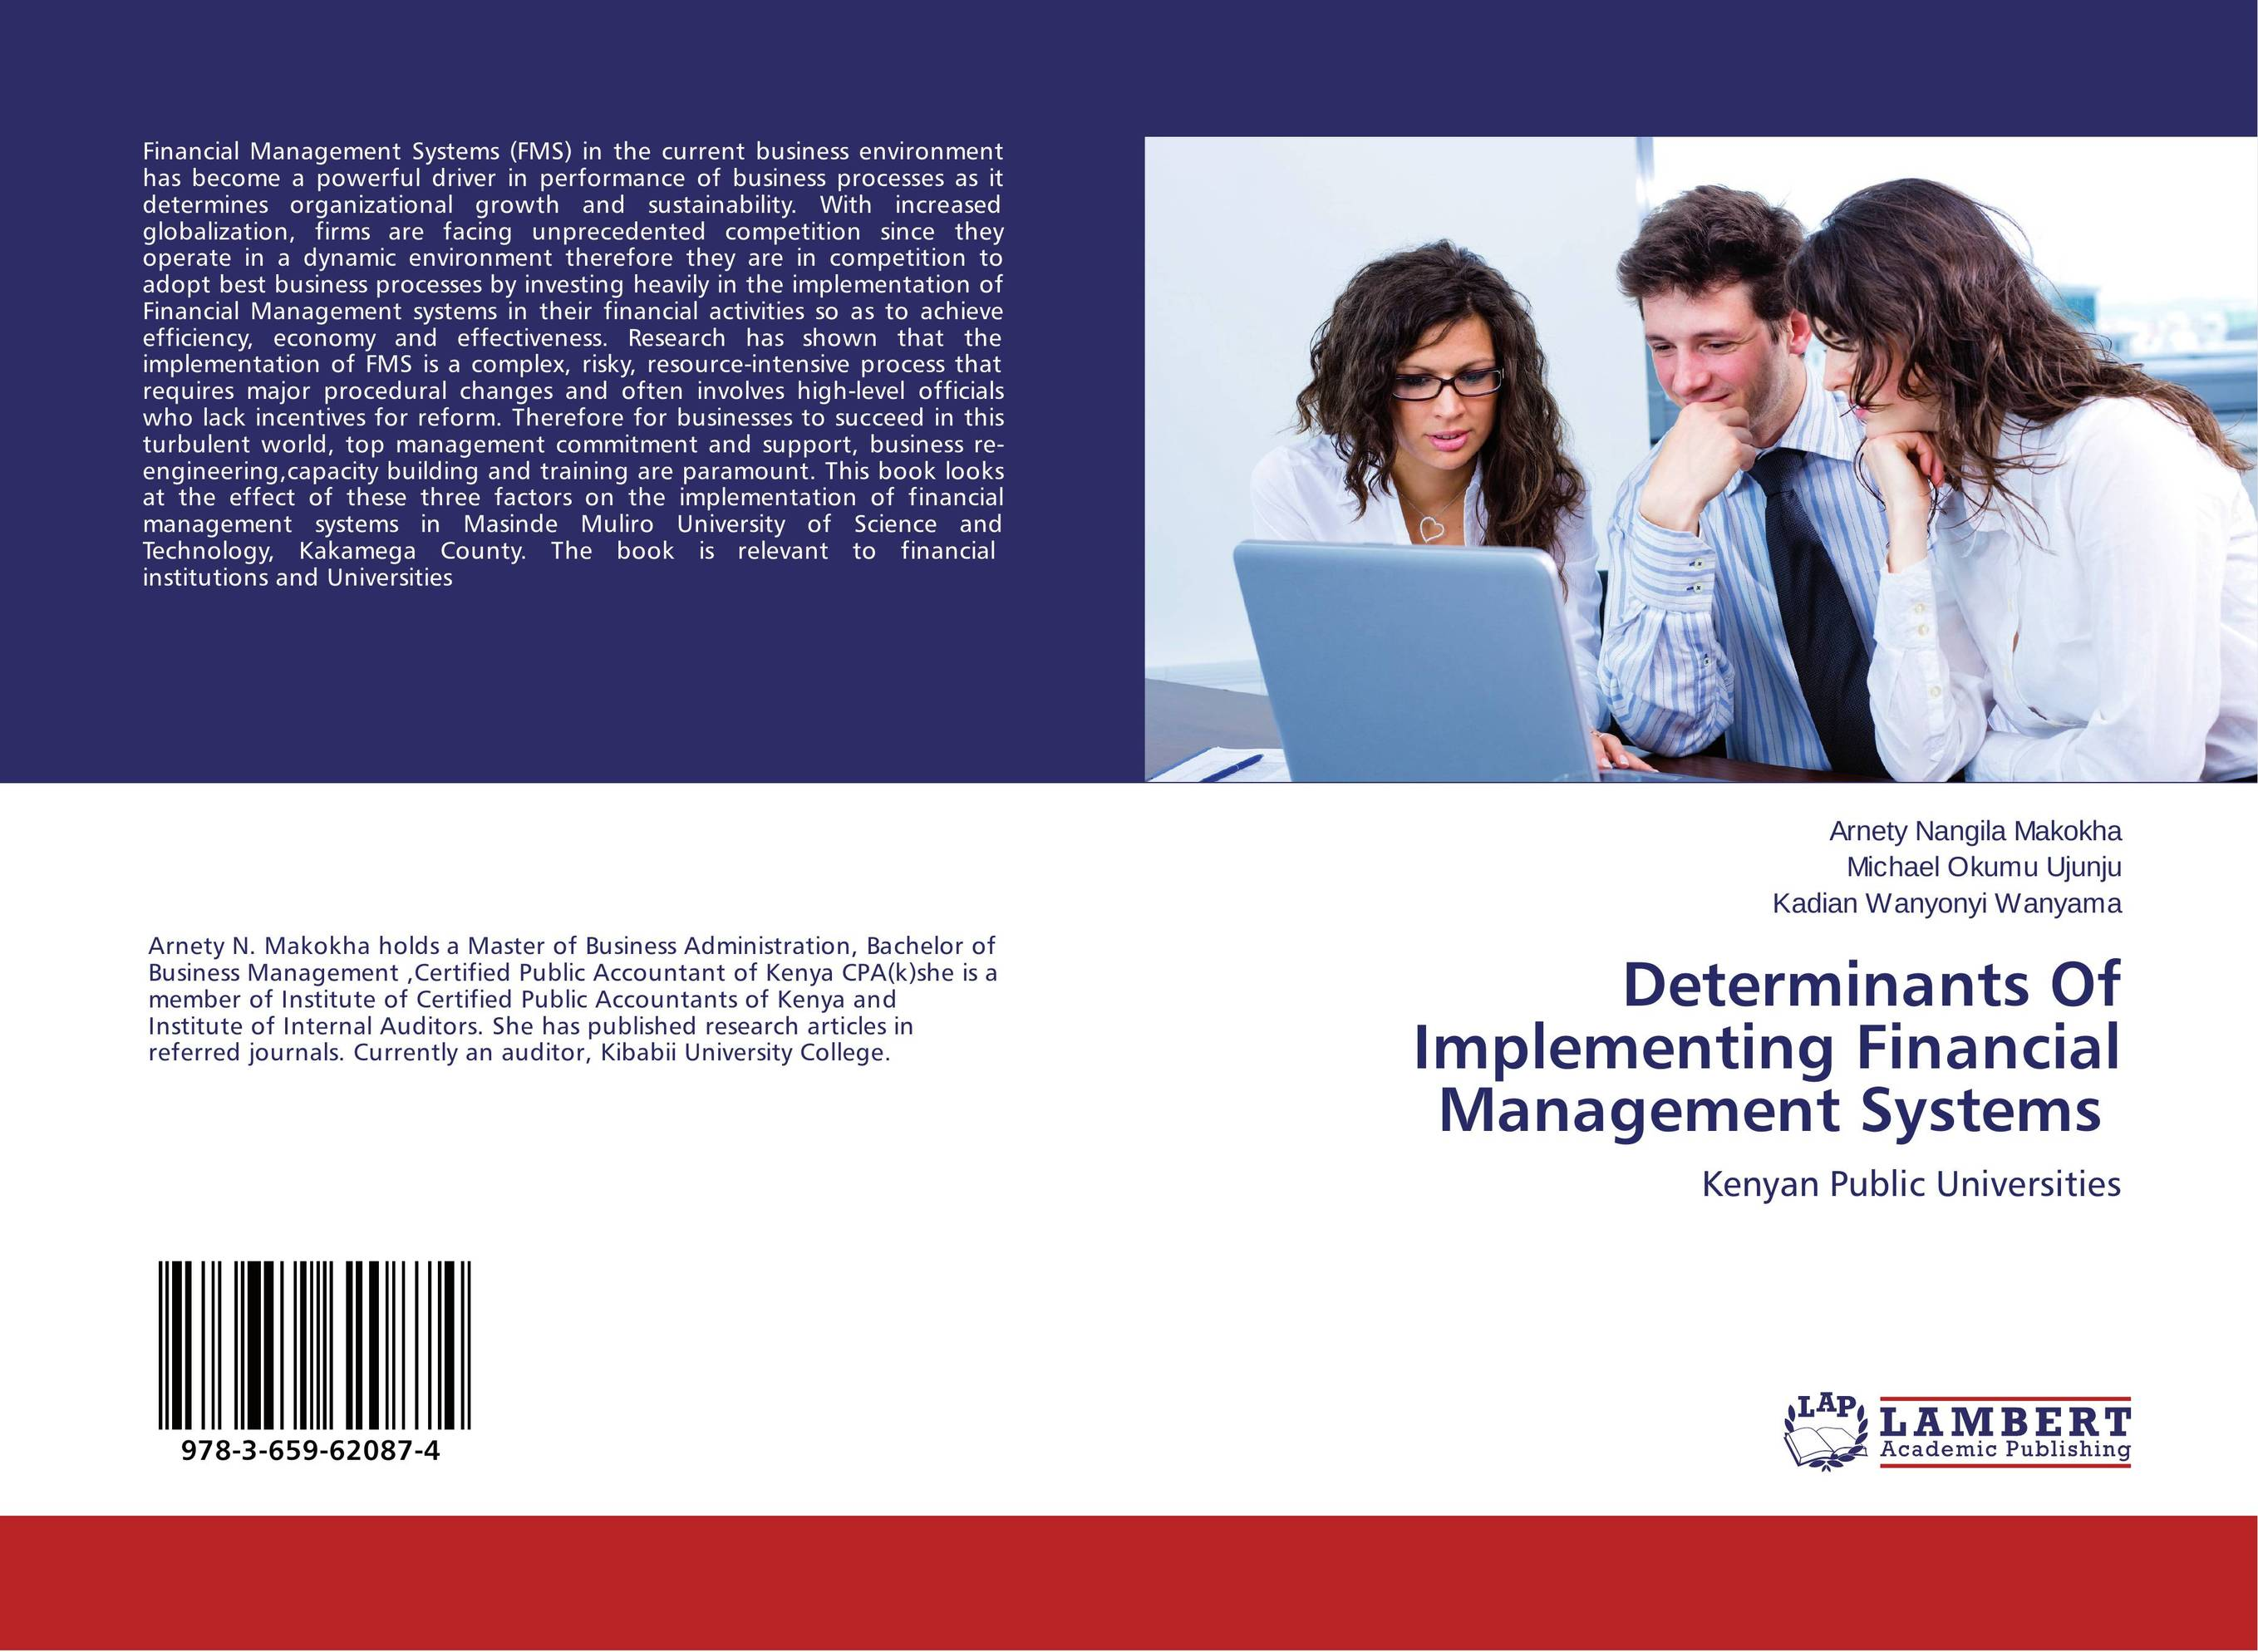 Determinants Of Implementing Financial Management Systems